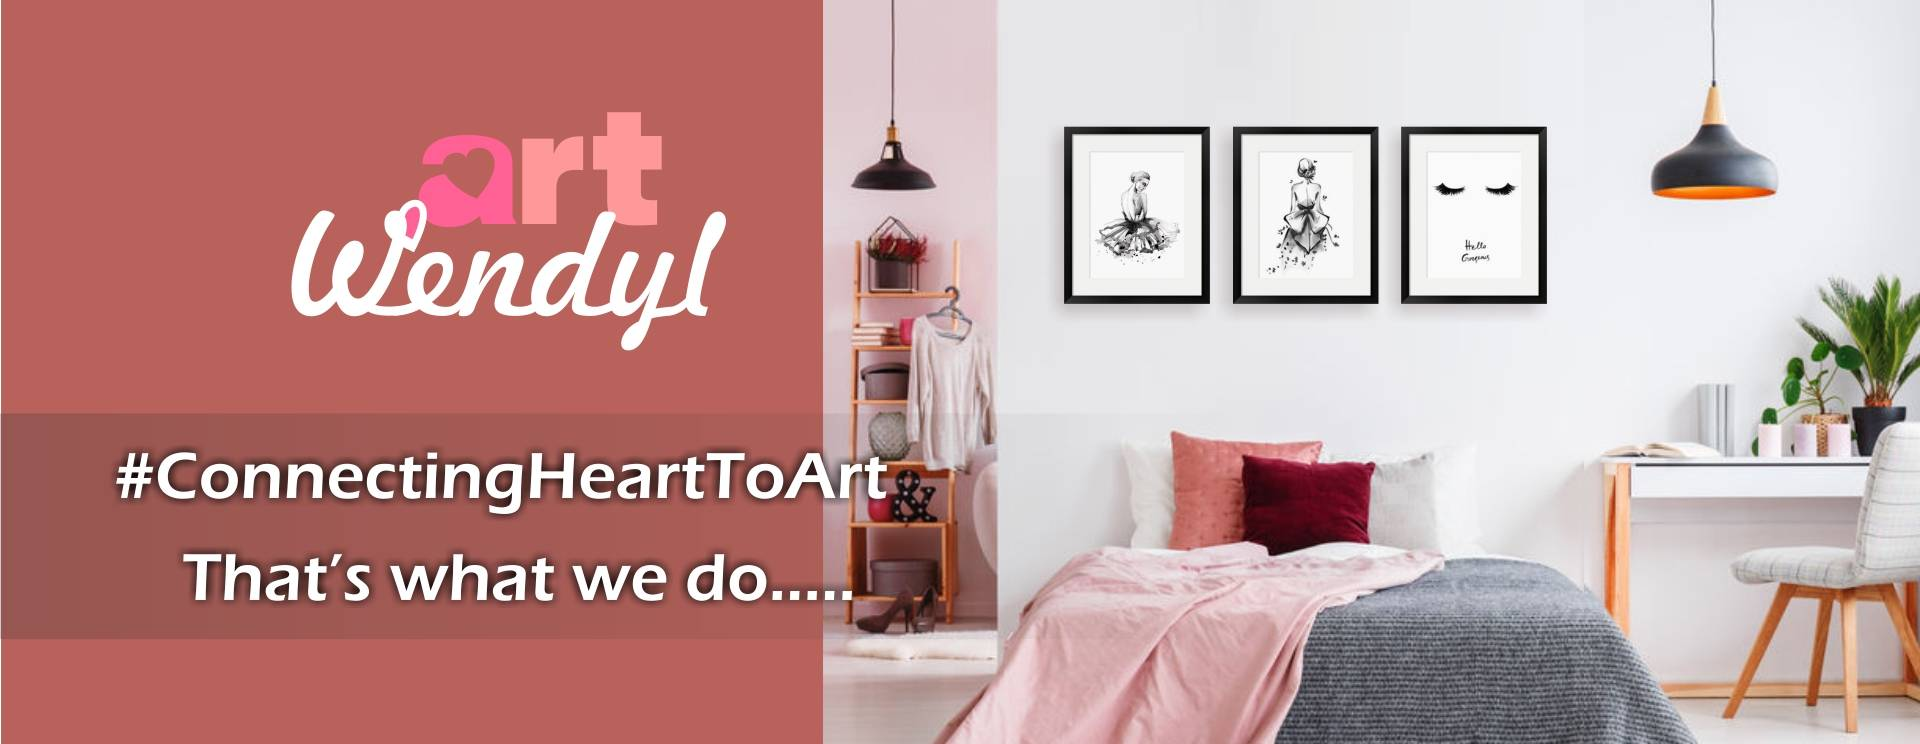 Connecting Heart To Art